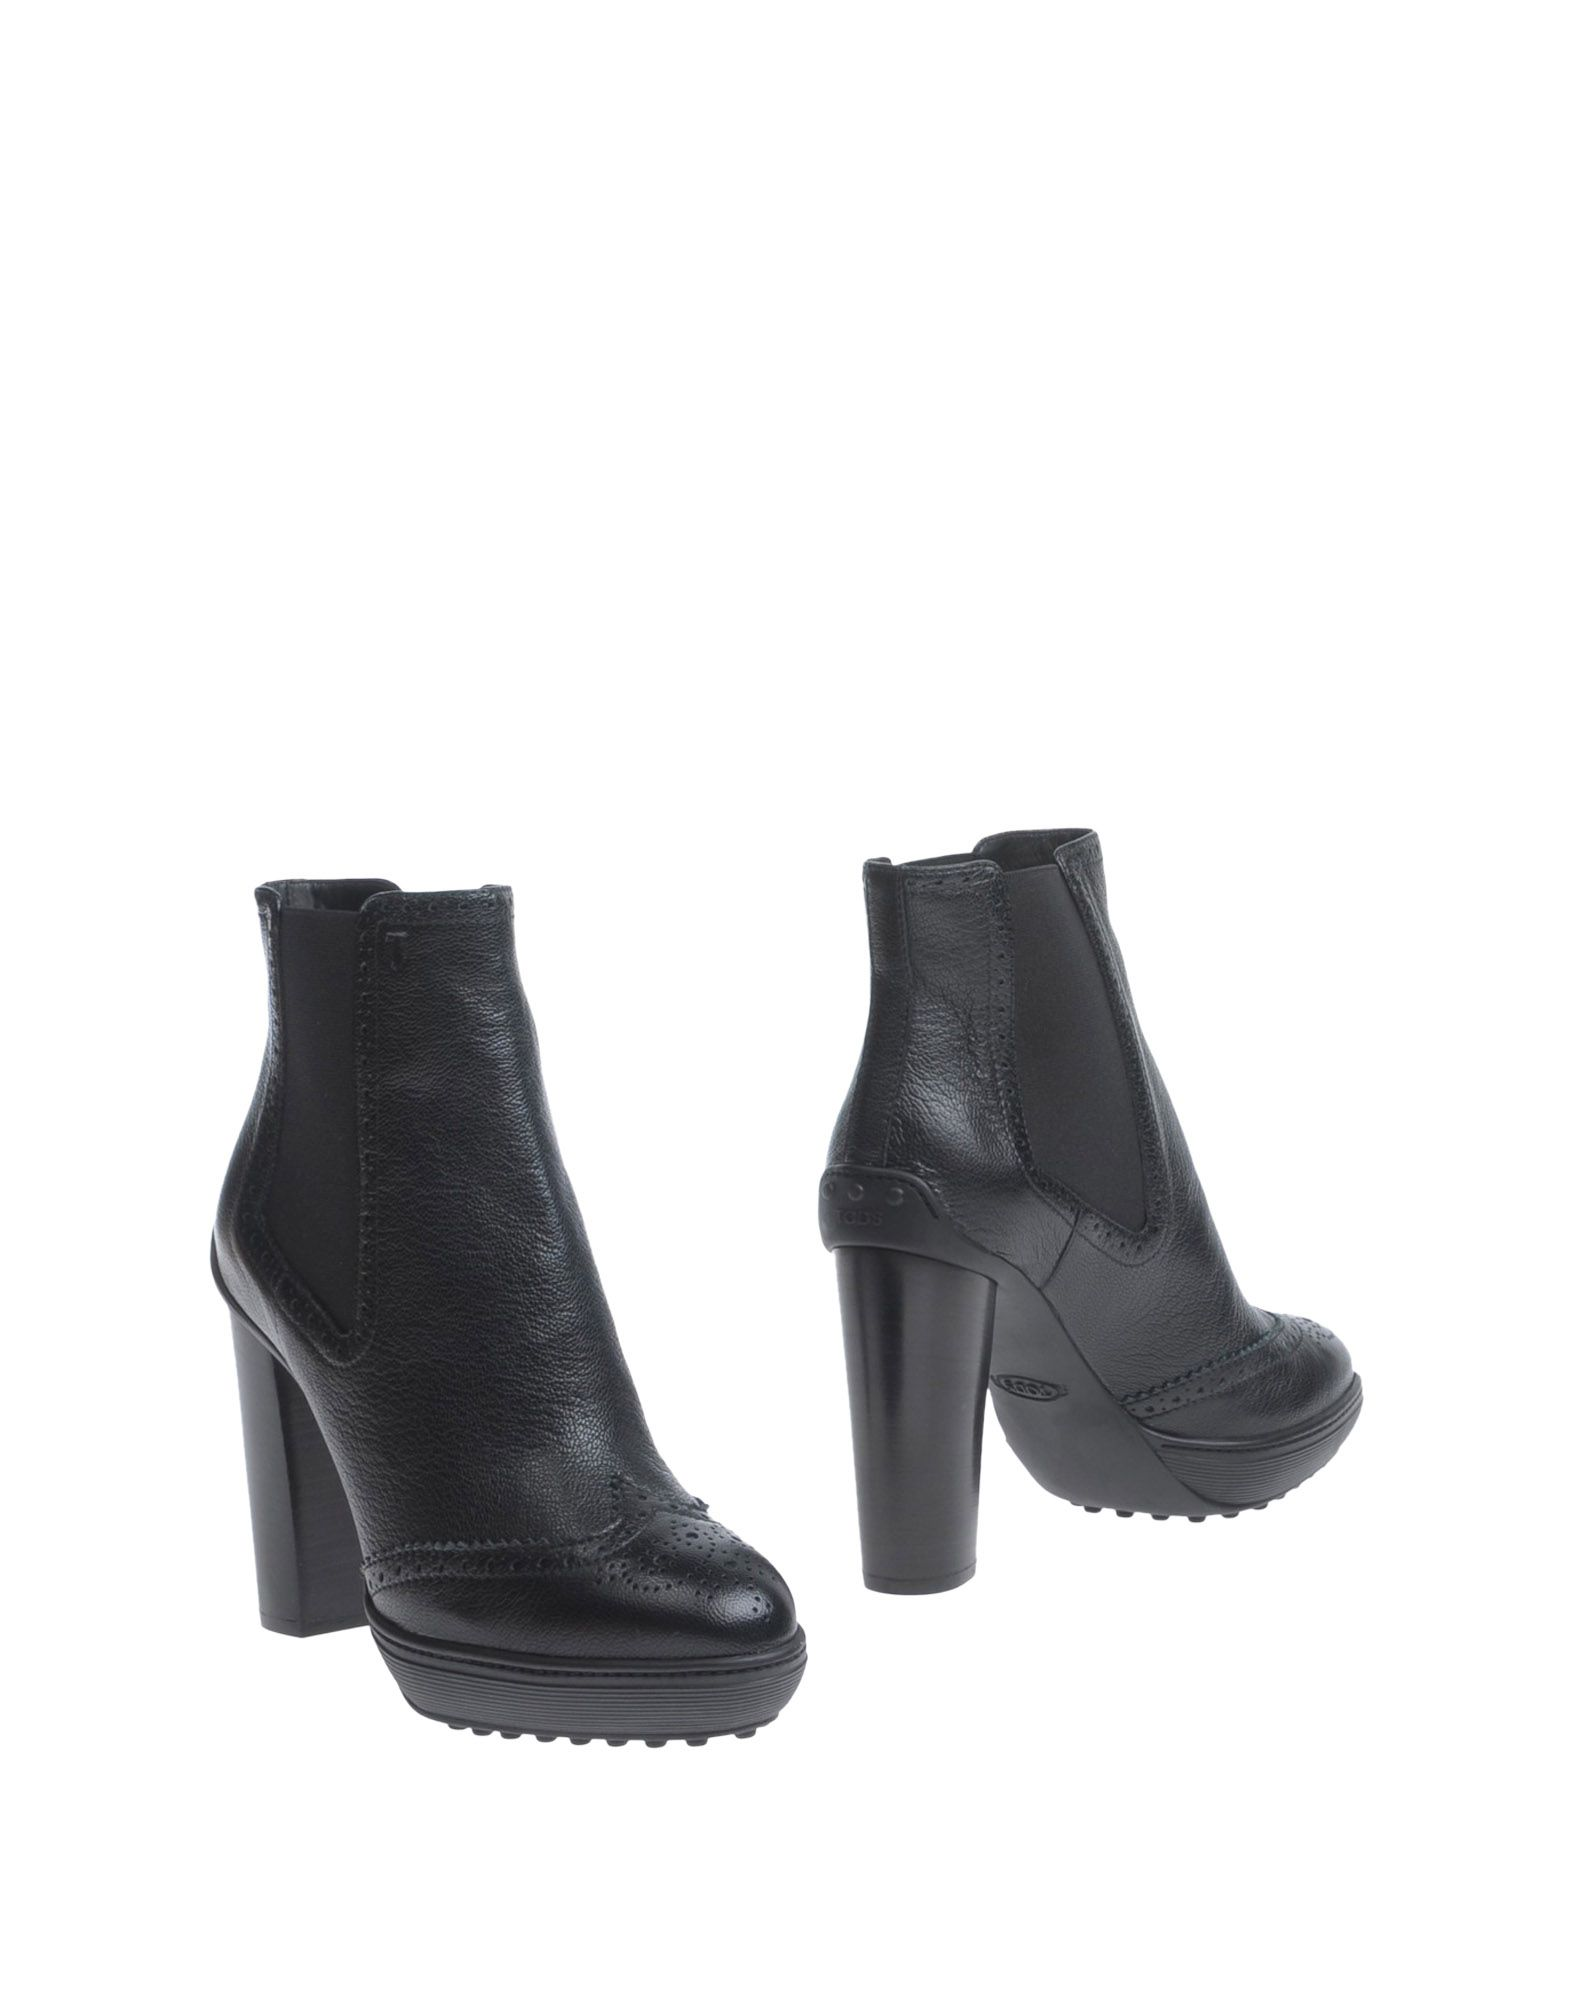 Chelsea Boots Tods Donna - Acquista online su